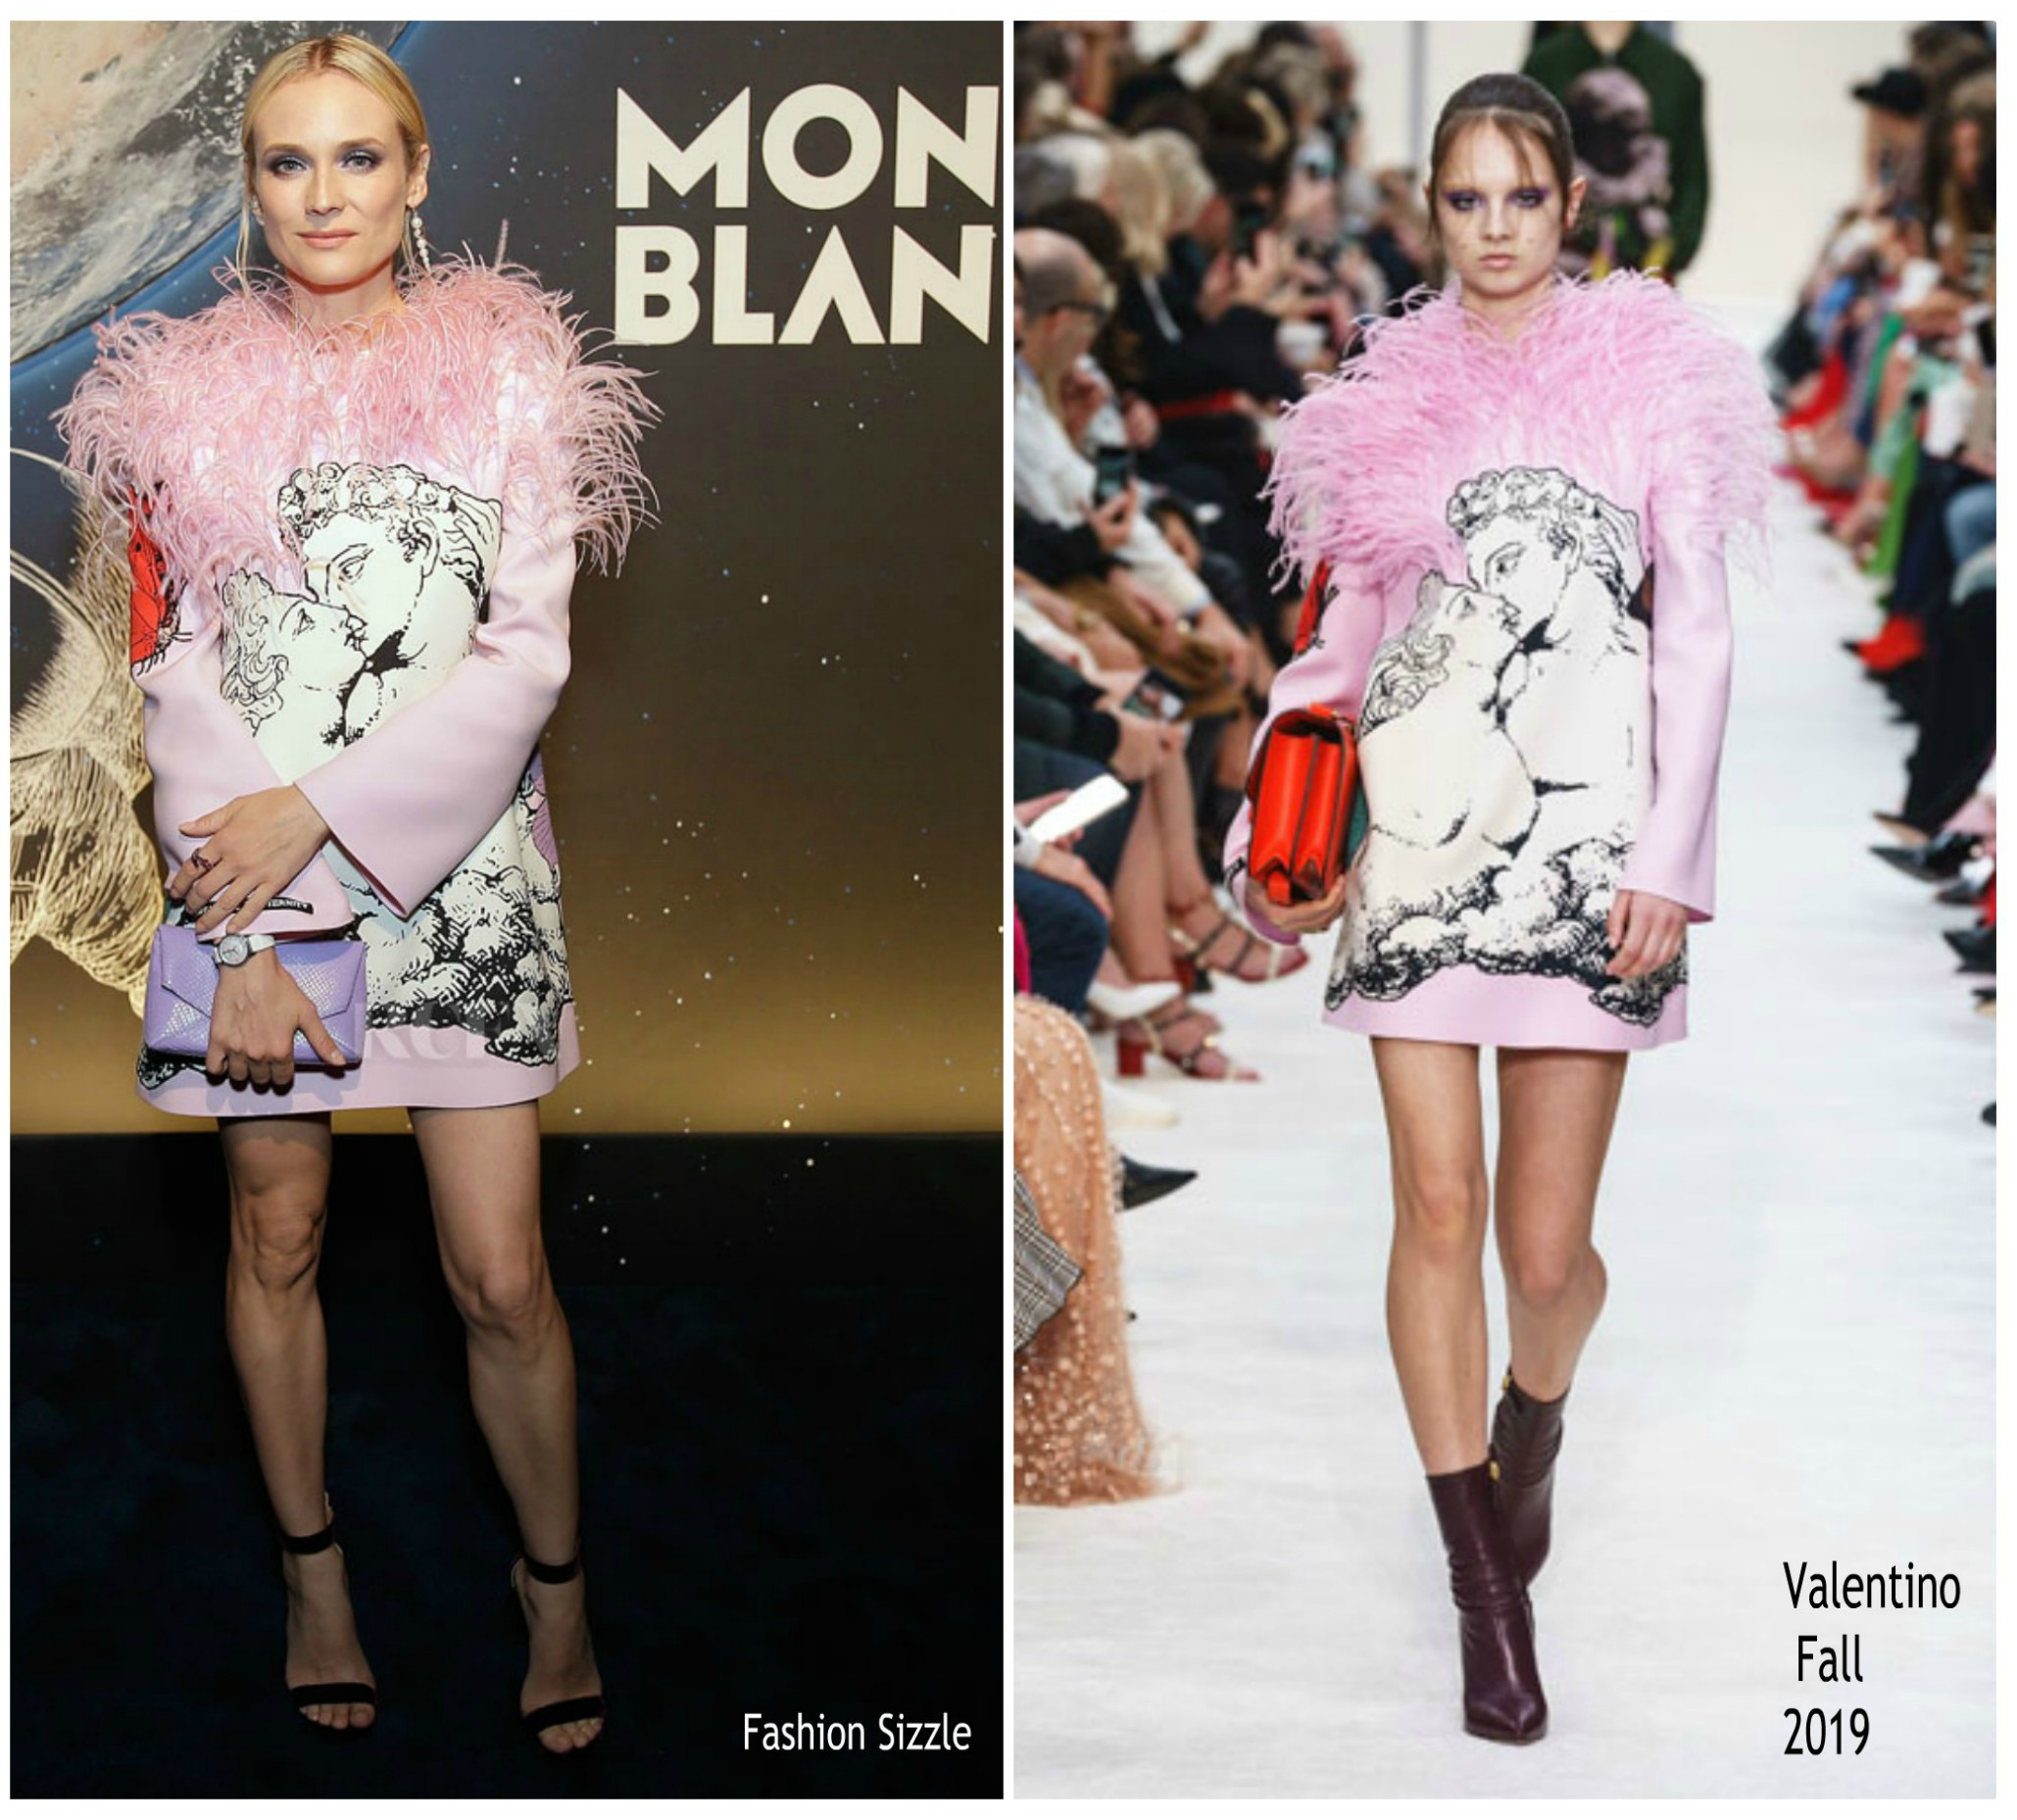 diane-kruger-in-valentino-montblanc-starwalker-collection-unveiling